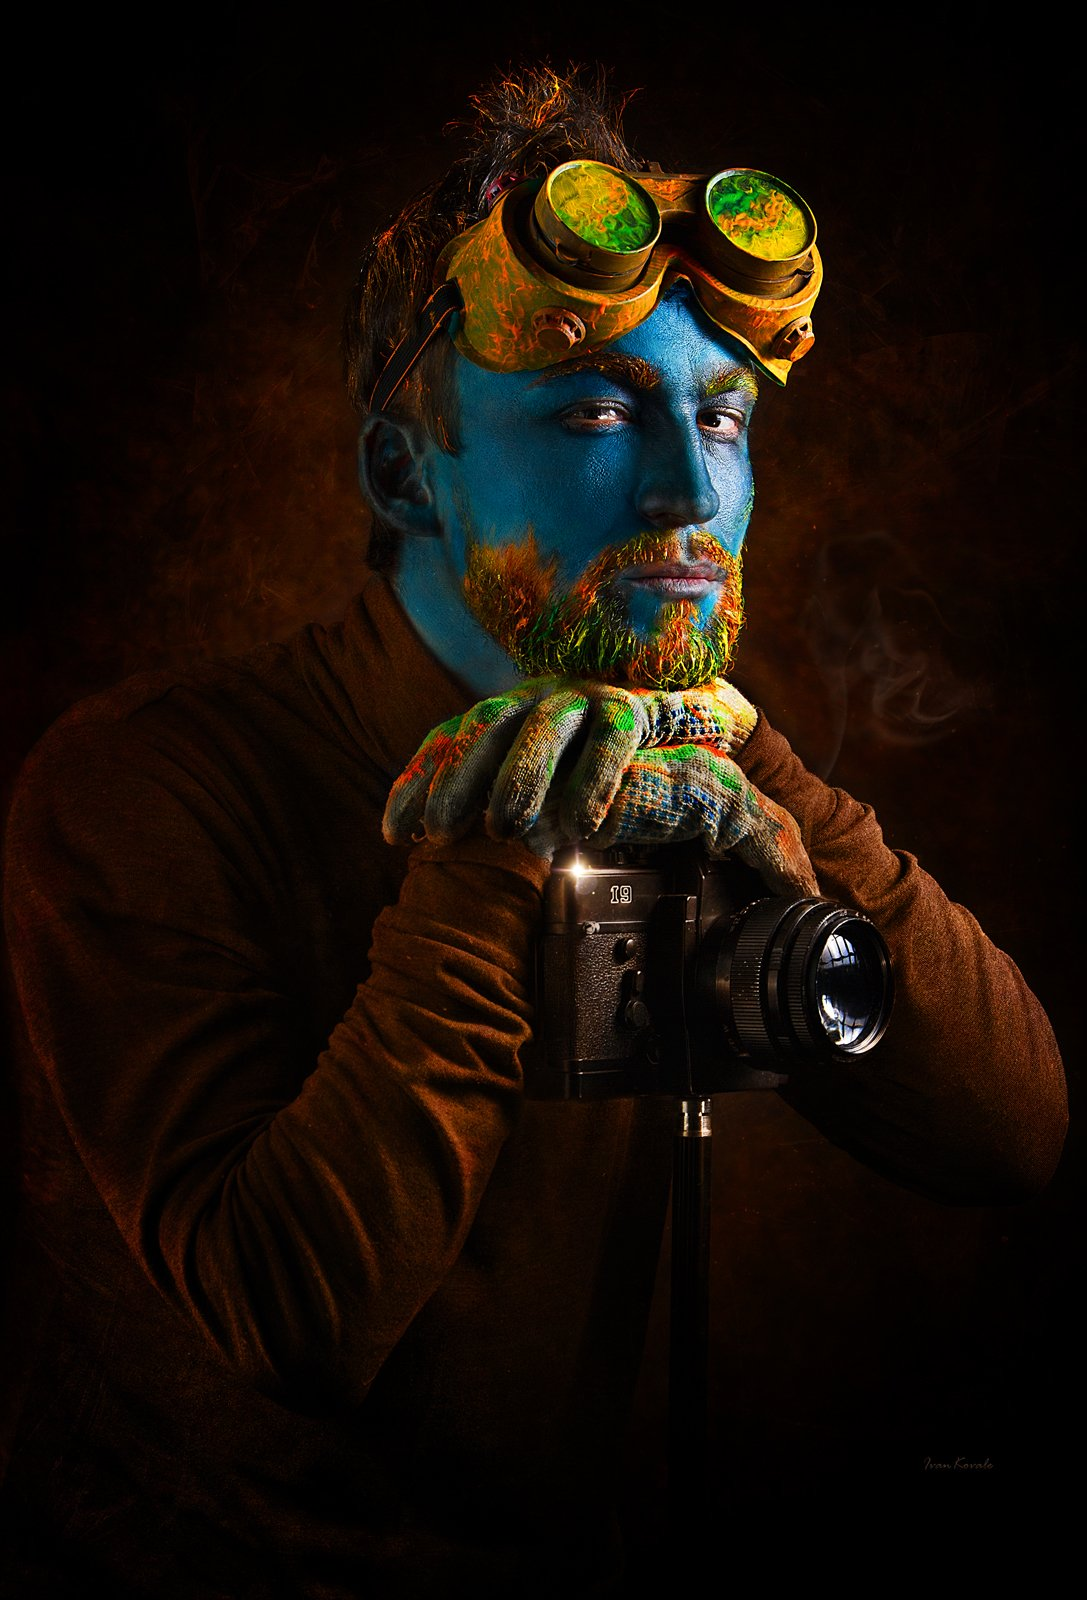 people, men, portrait, makeup, art makeup, body painting, art, eyes, low key, black, color, leather, texture, eyebrows, jewelry, gold, photo, neck, collar, mayan, tribe, life, look, creative, vision, Ковалёв Иван